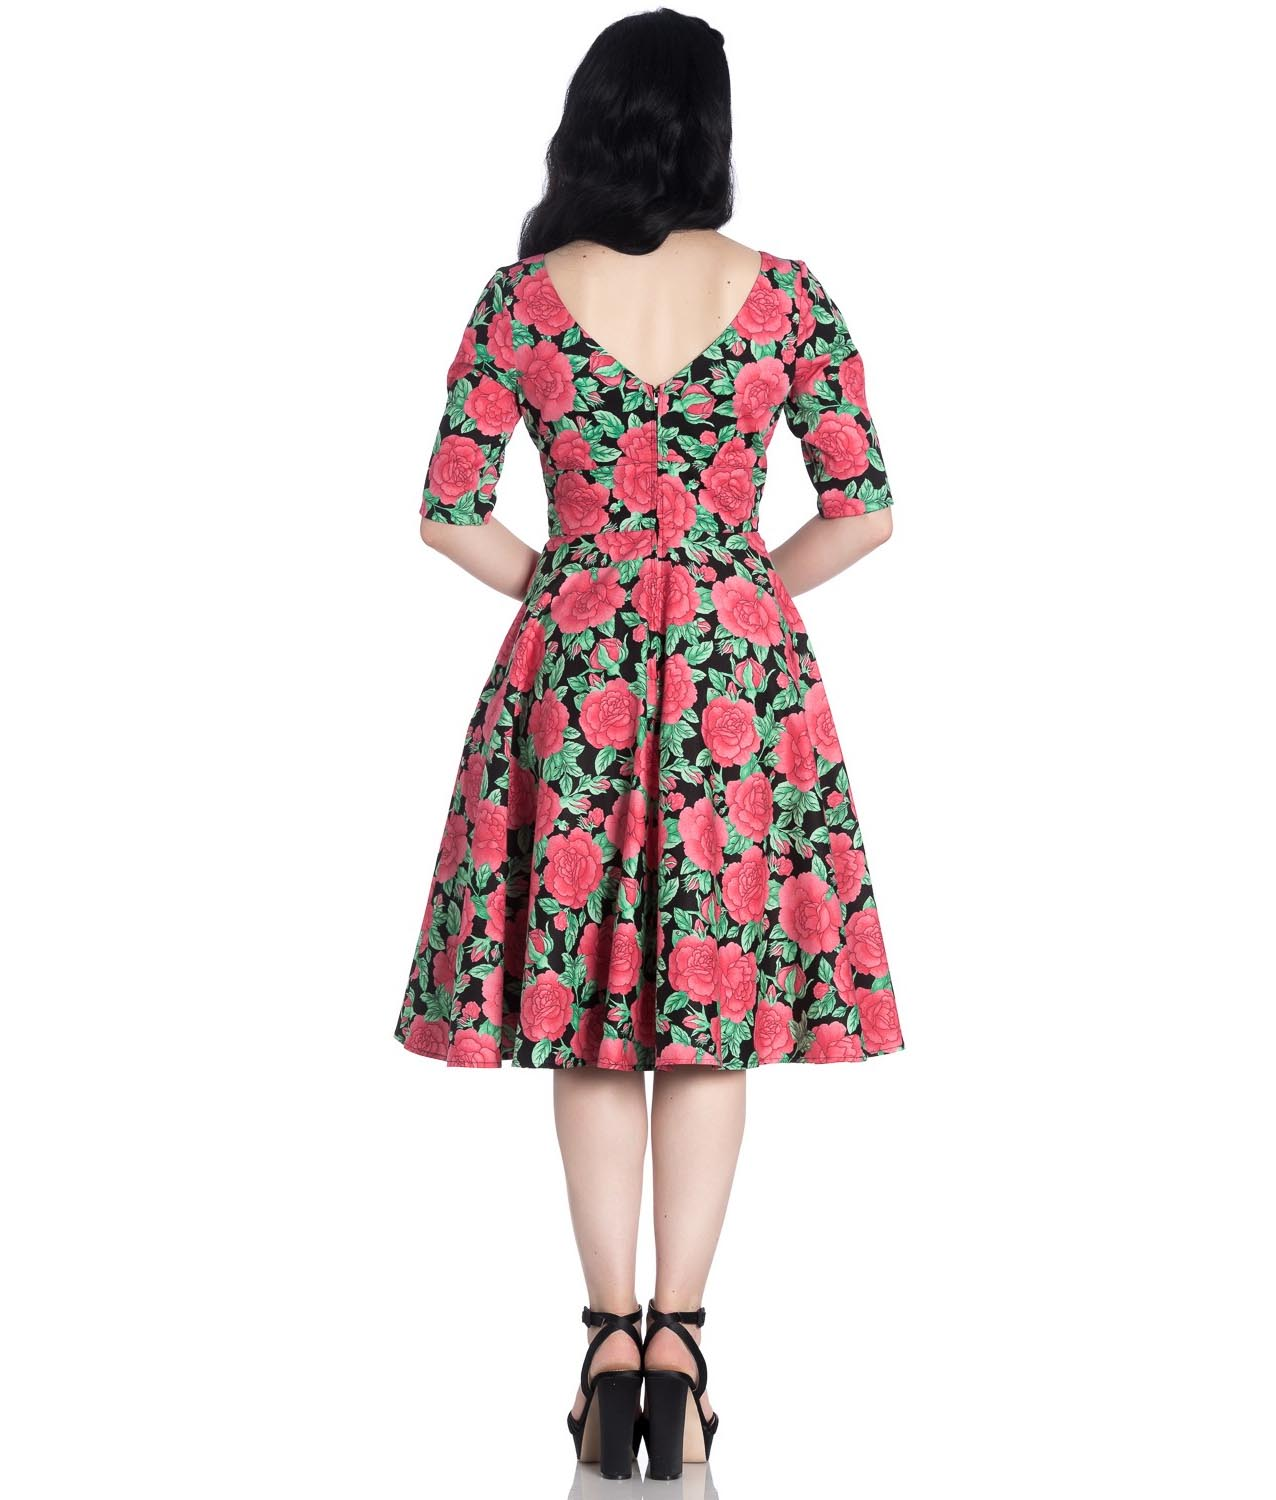 Hell-Bunny-40s-50s-Black-Pin-Up-Vintage-Dress-DARCY-Pink-Roses-All-Sizes thumbnail 21